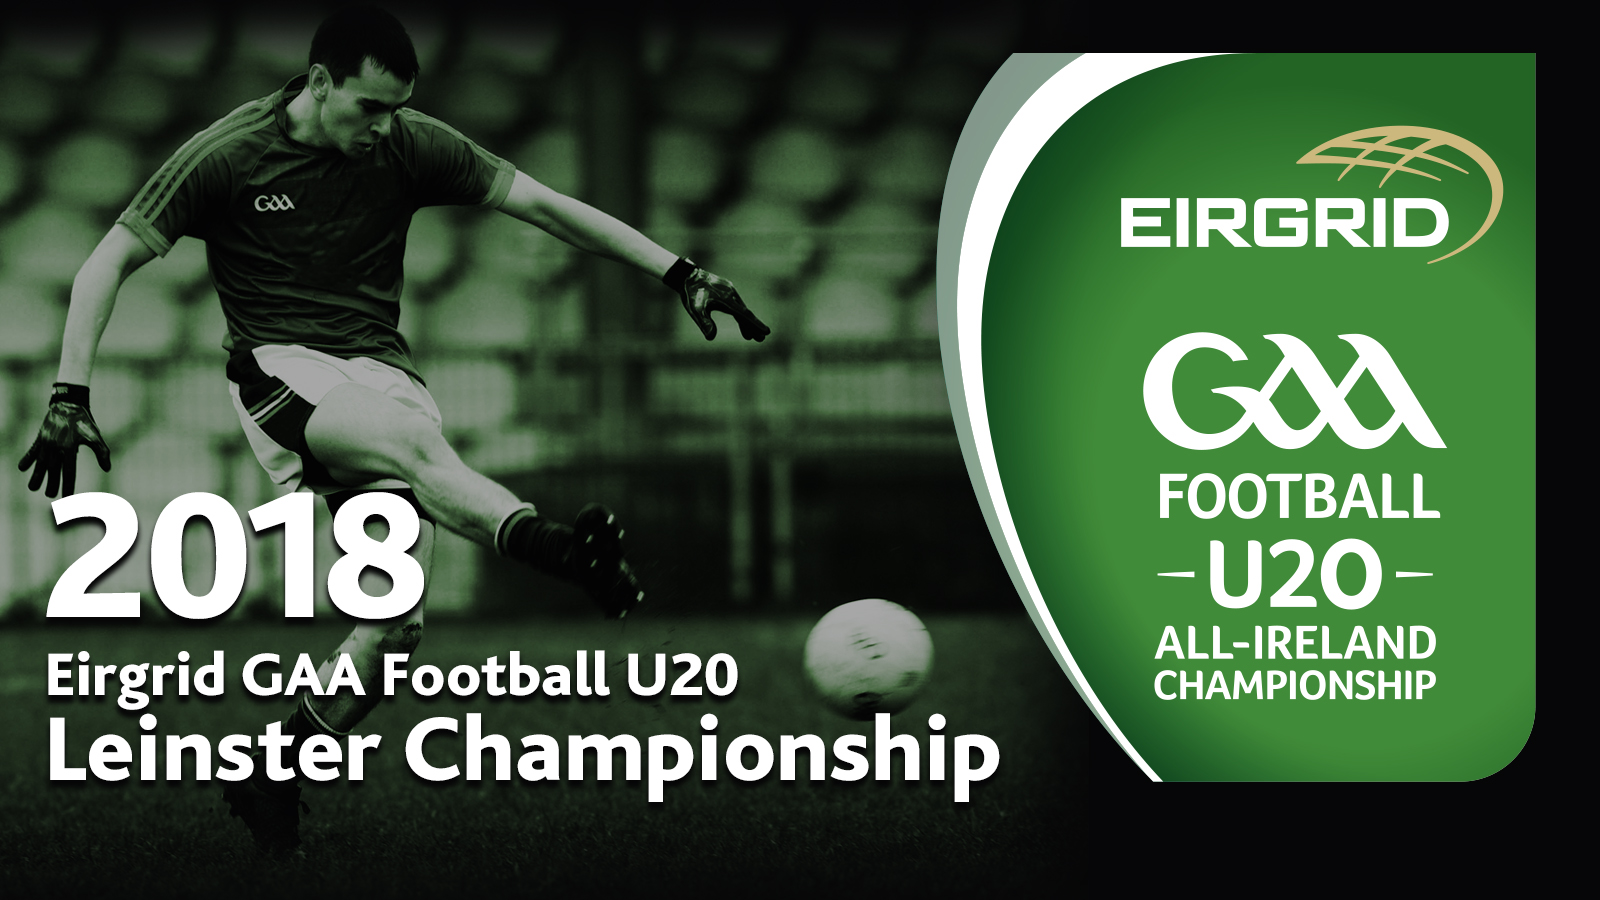 Offaly U20 Football Team announced